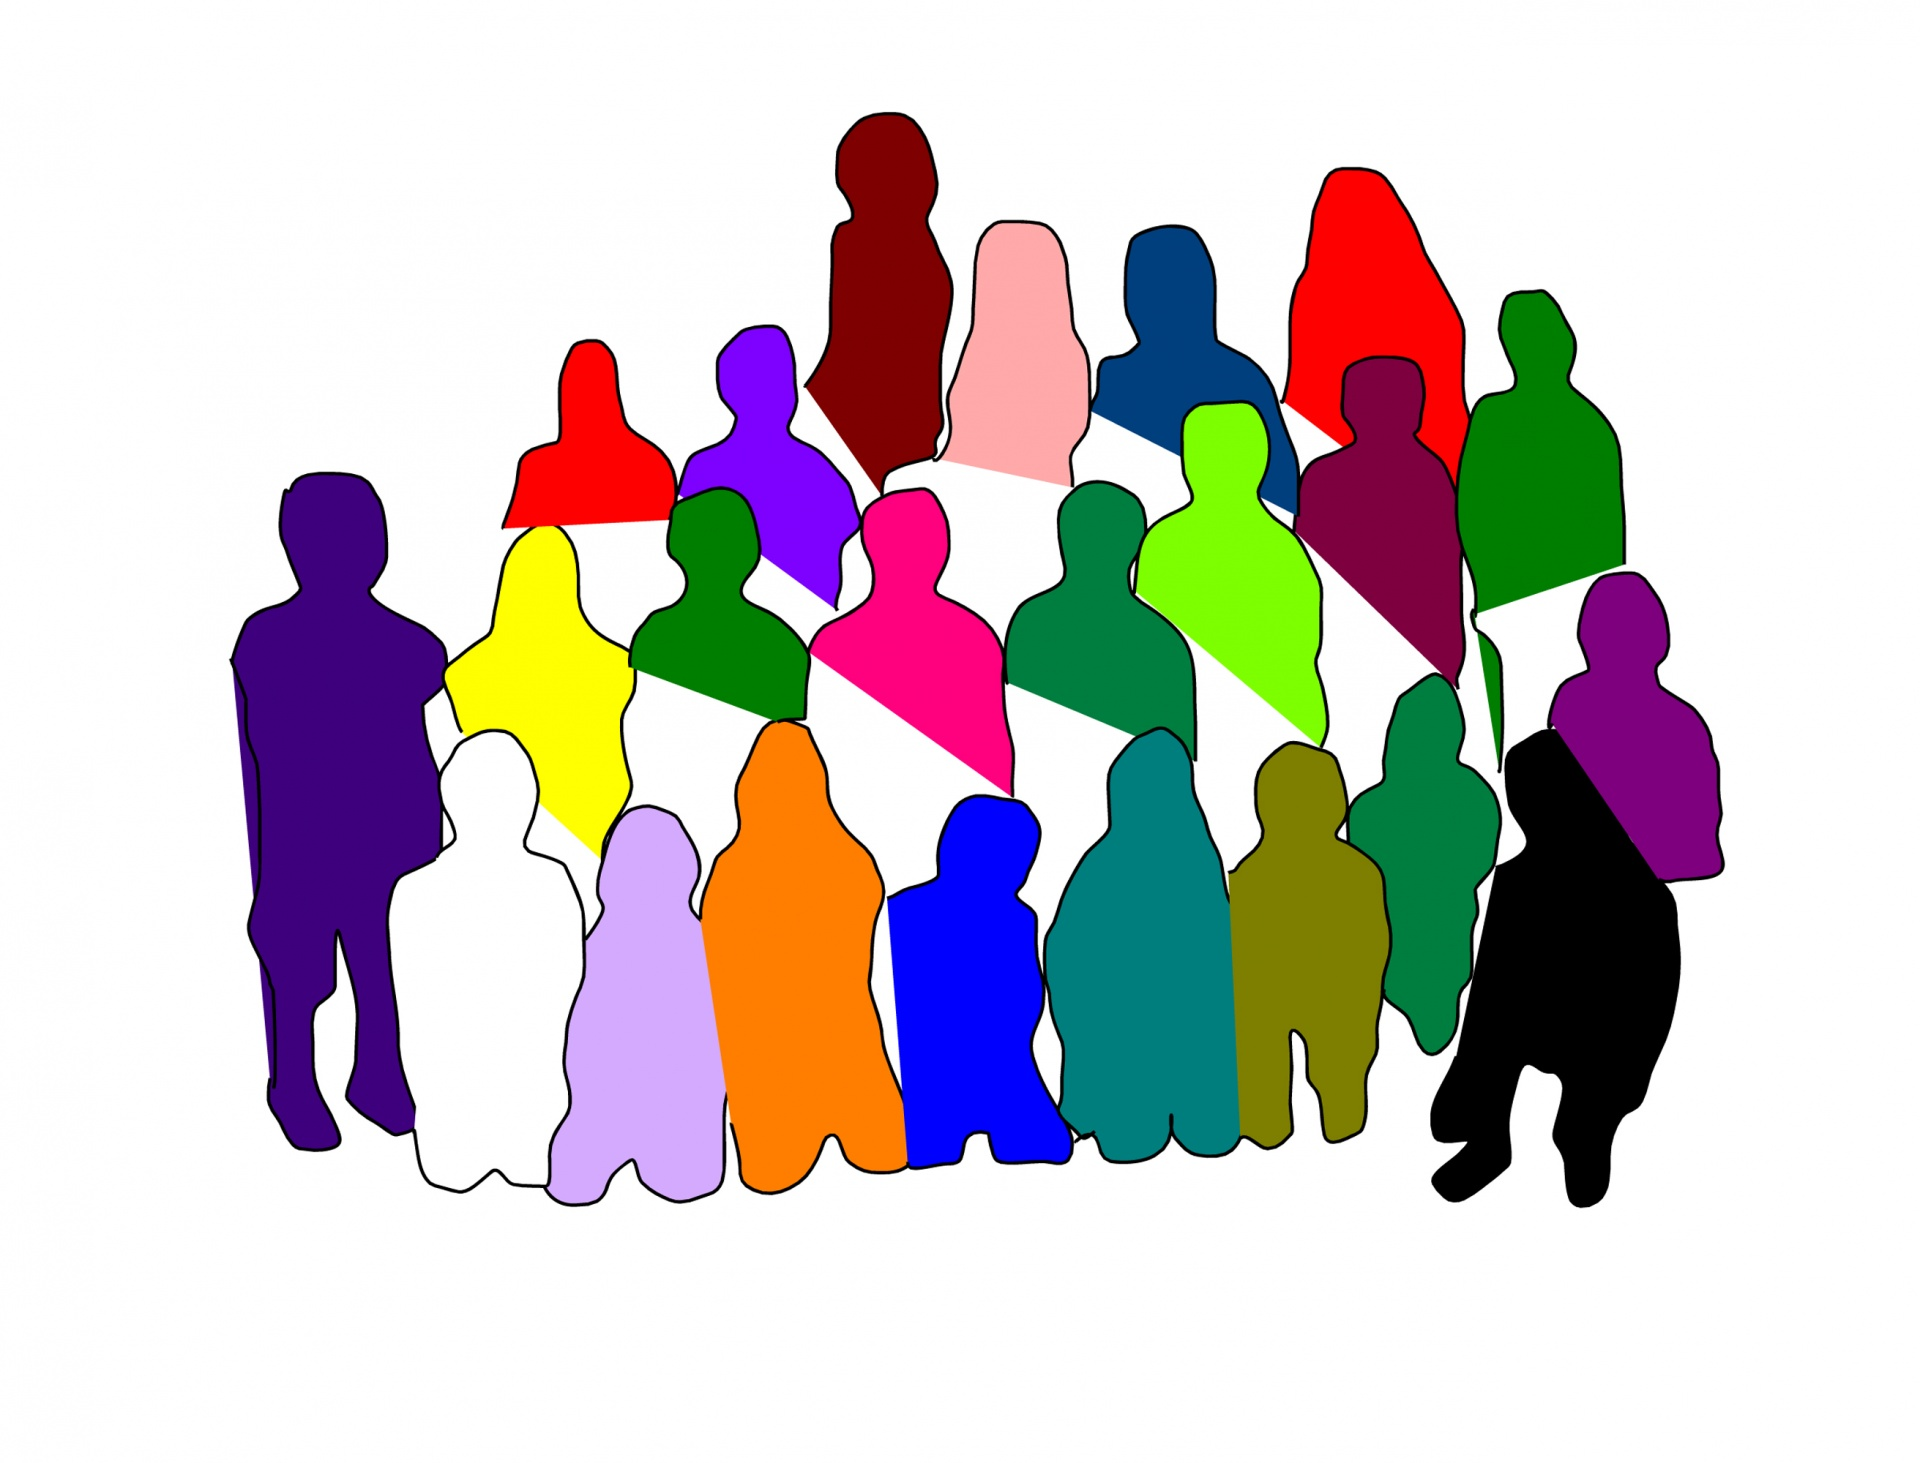 Diverse Group Silhouette Free Stock Photo.